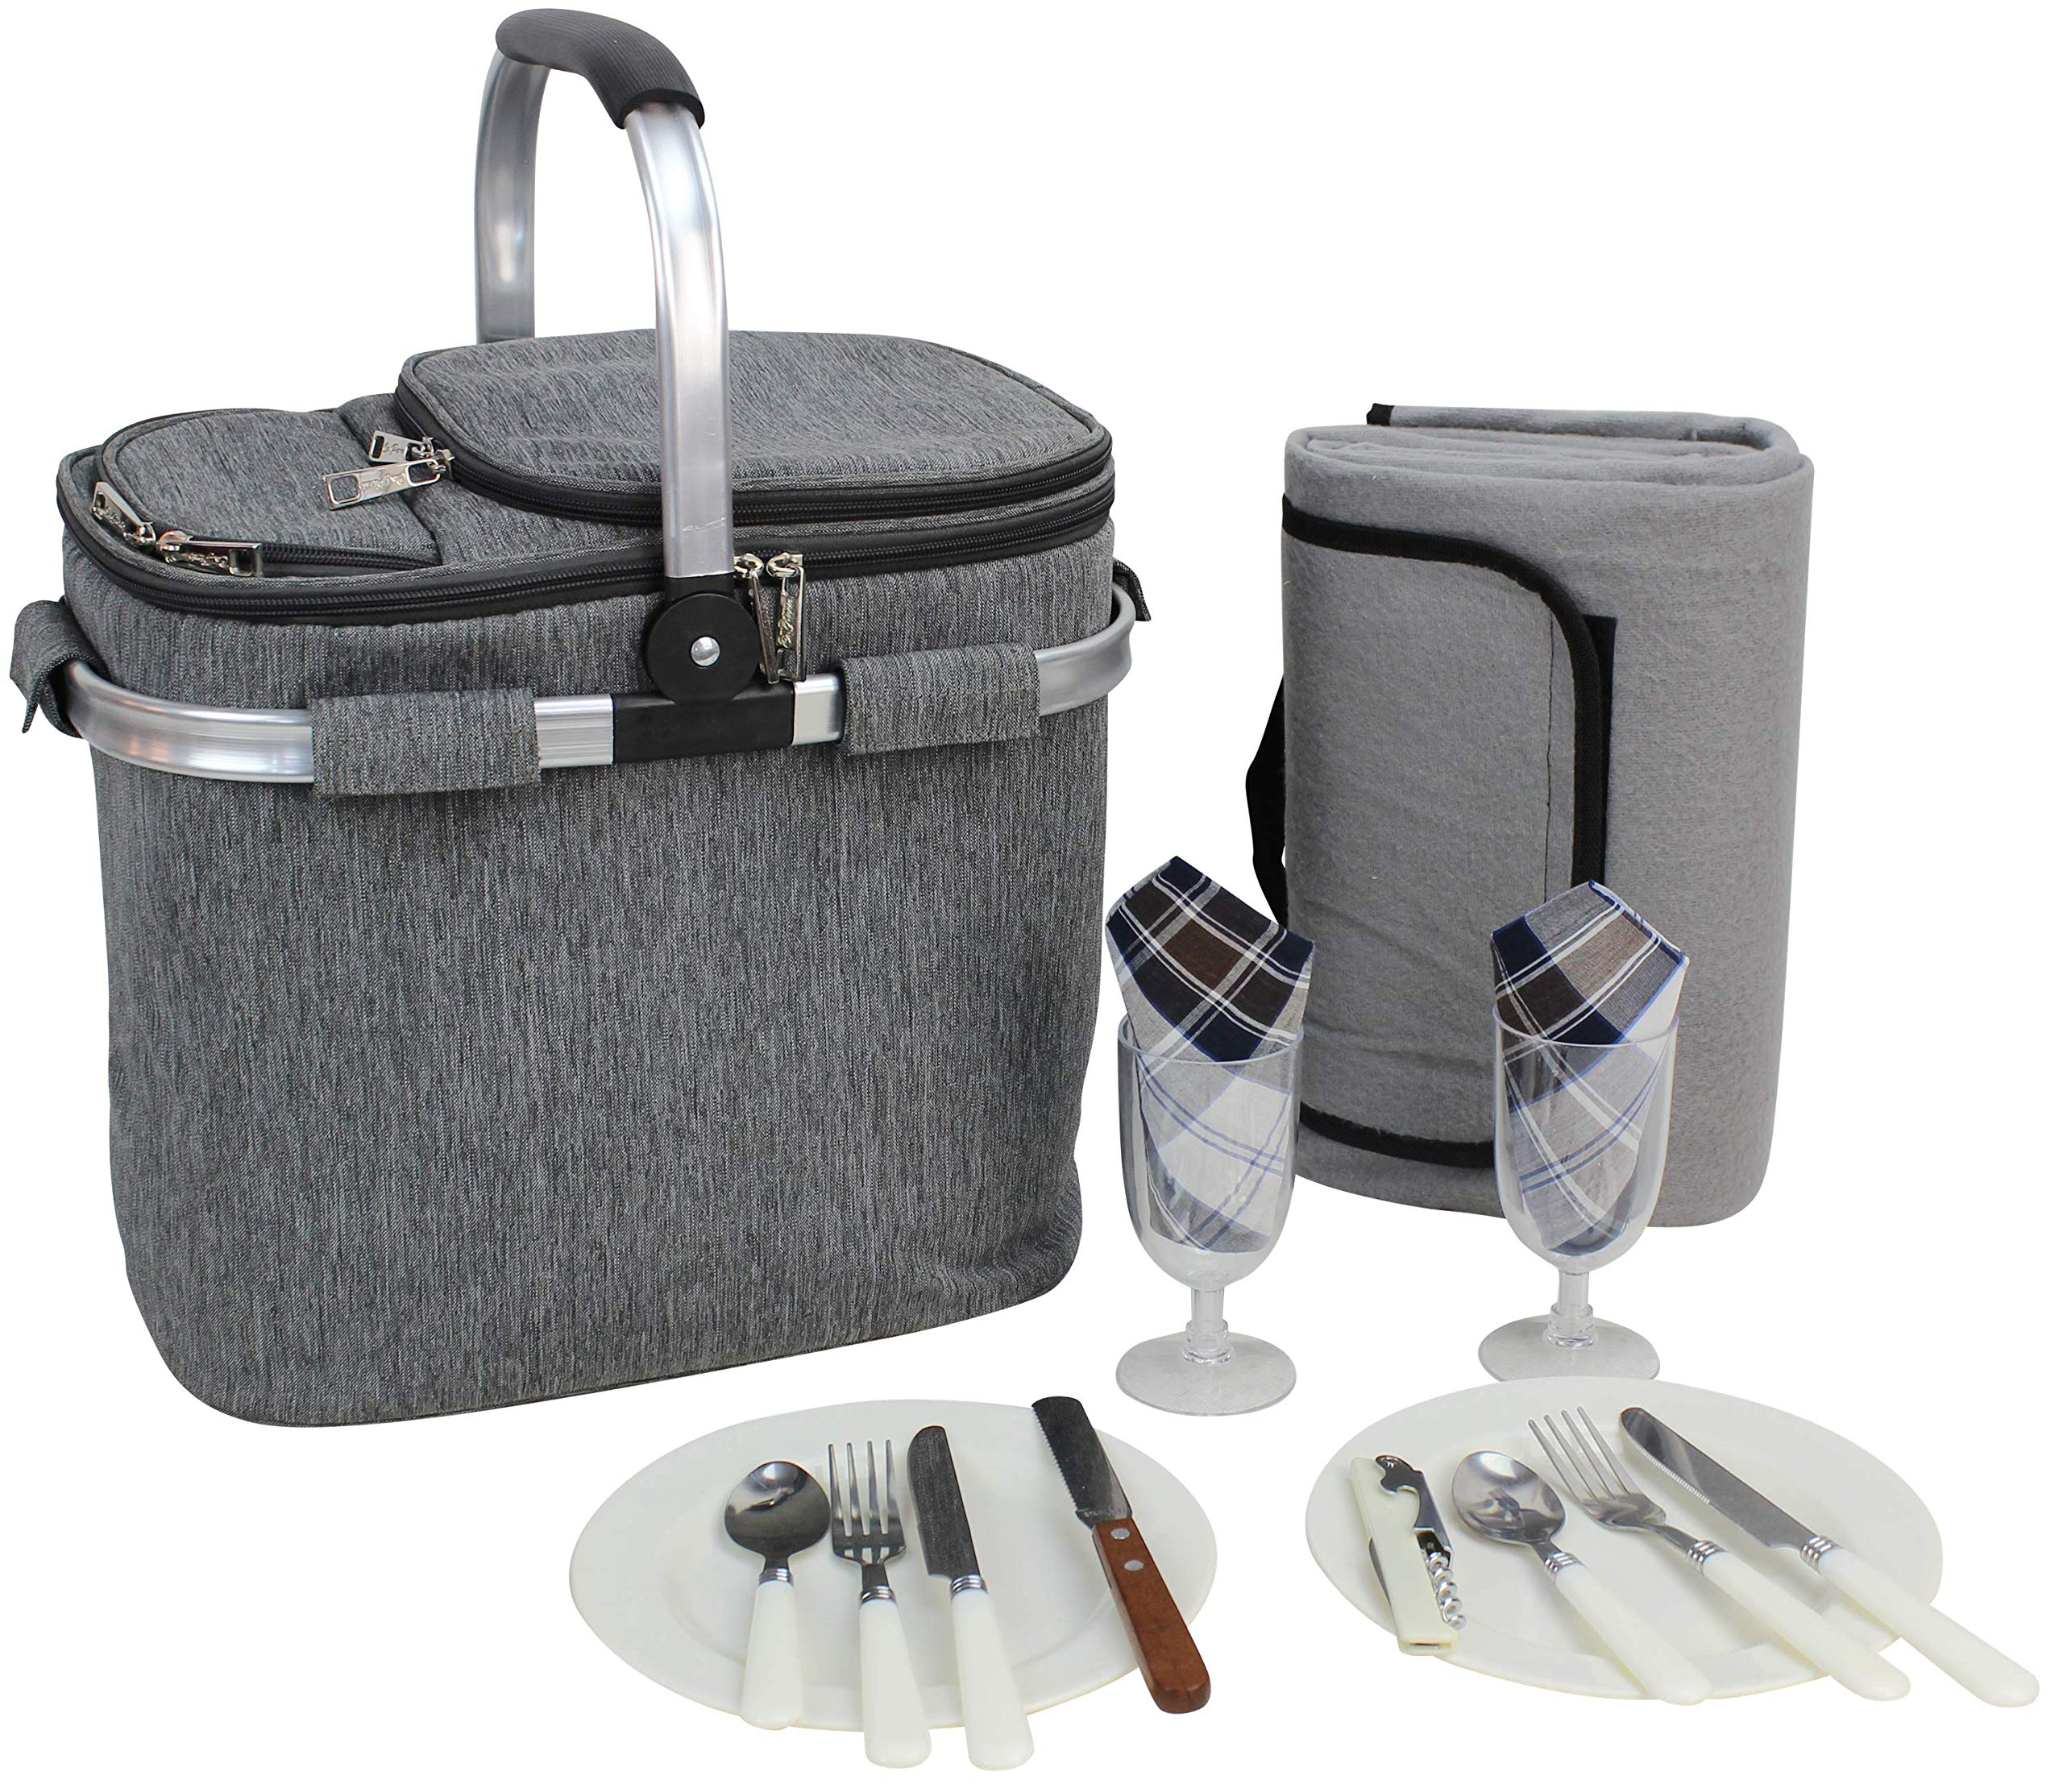 Picnic Basket for 2 Beautiful Insulated Tote Bag Kit Insulated Lunch Tote for Women & Men Picnic Backpack Camping Tableware Set and Waterproof Blanket | Aluminum Frame and Handle | Collapsible Cooler